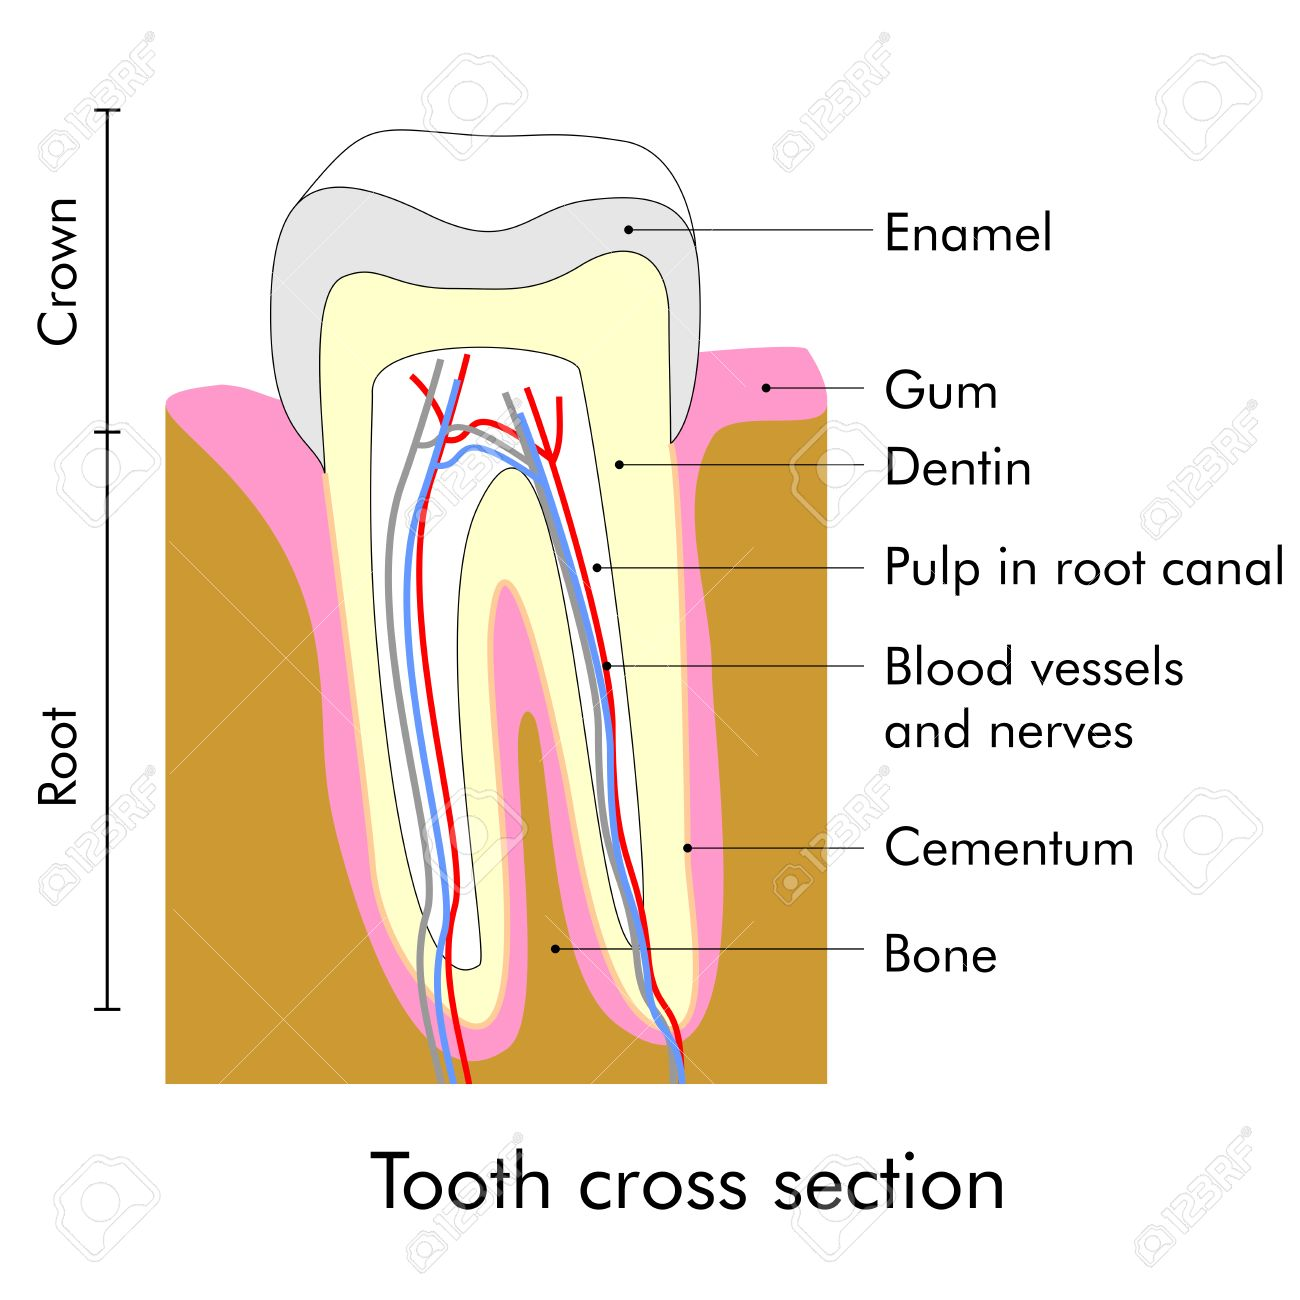 Tooth Cross Section Showing Teeth Anatomy Stock Photo, Picture And ...